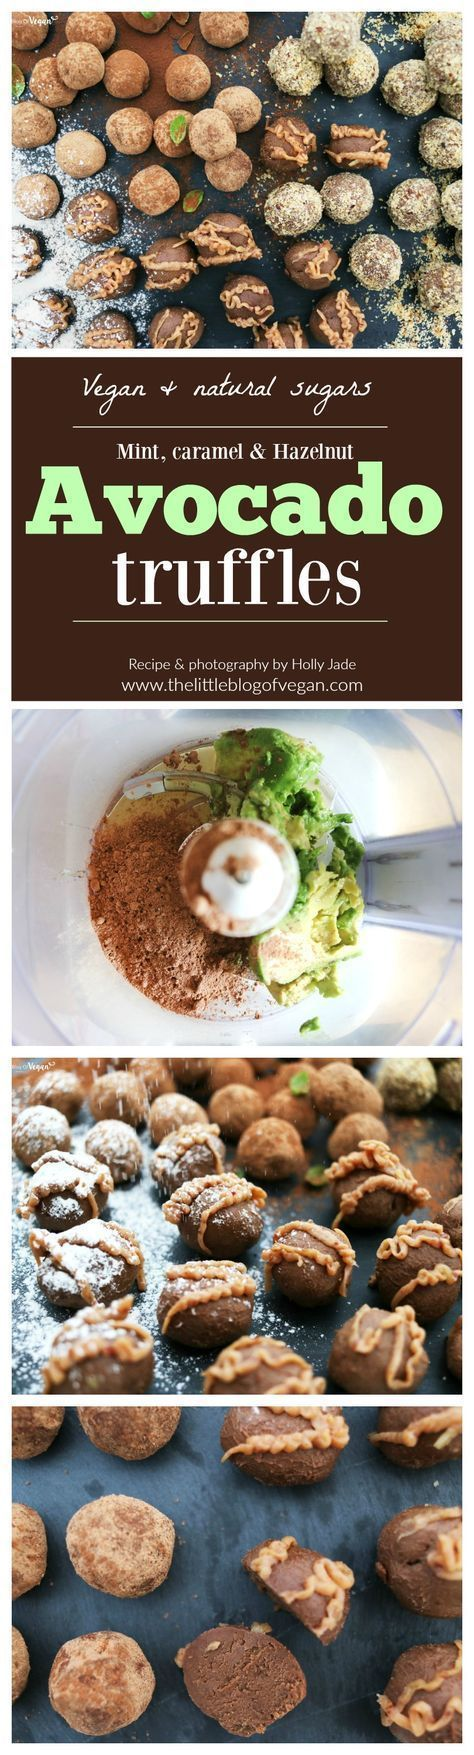 Vegan & guilt-free creamy avocado mint, caramel and hazelnut truffles with a caramel date sauce. Only natural sugars, quick & easy to make and is the perfect Easter gift!